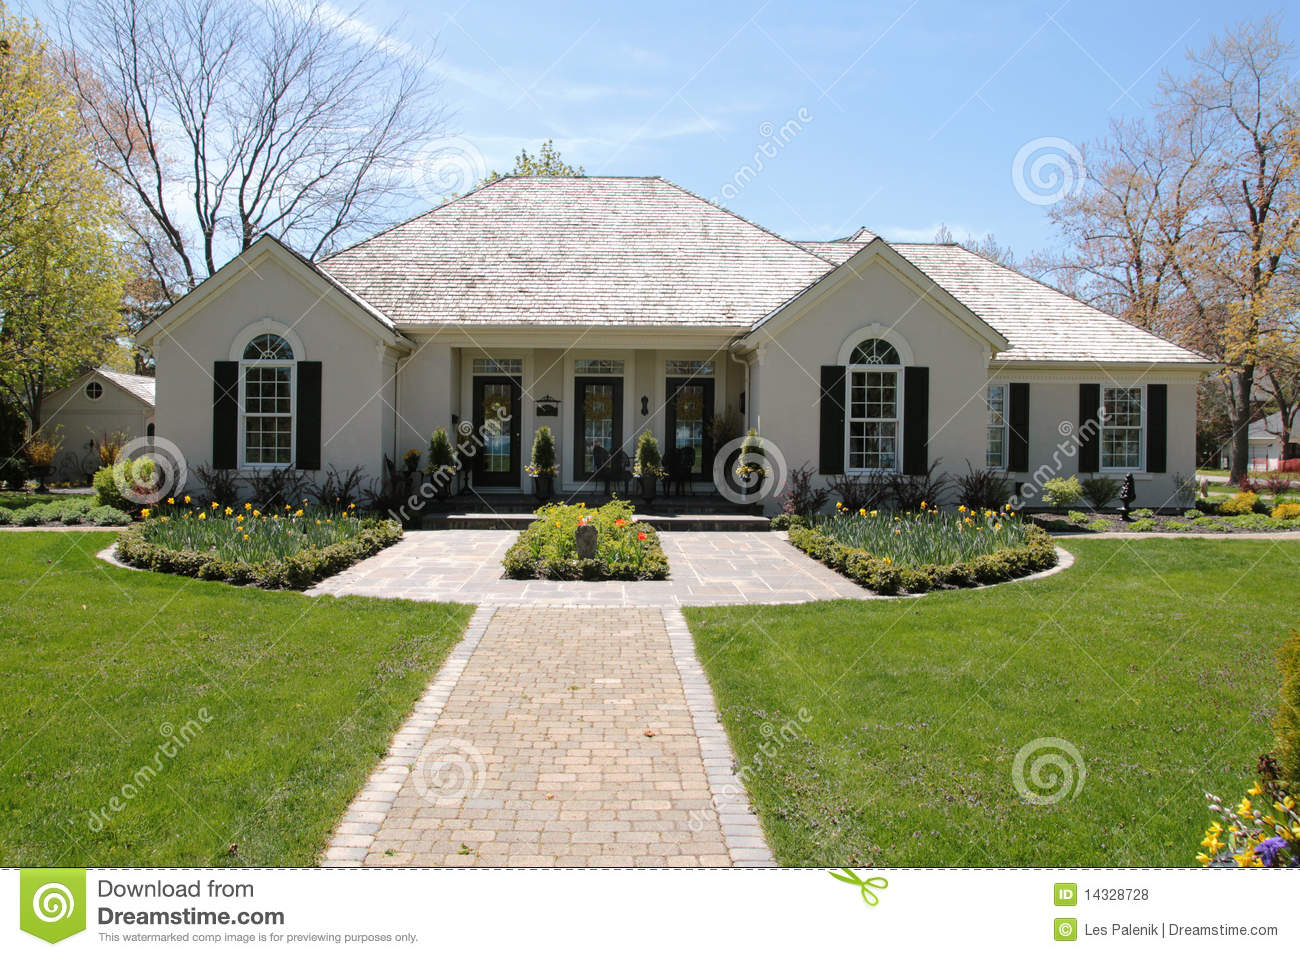 Nice house with symmetrical landscaping stock photo for Nice house images